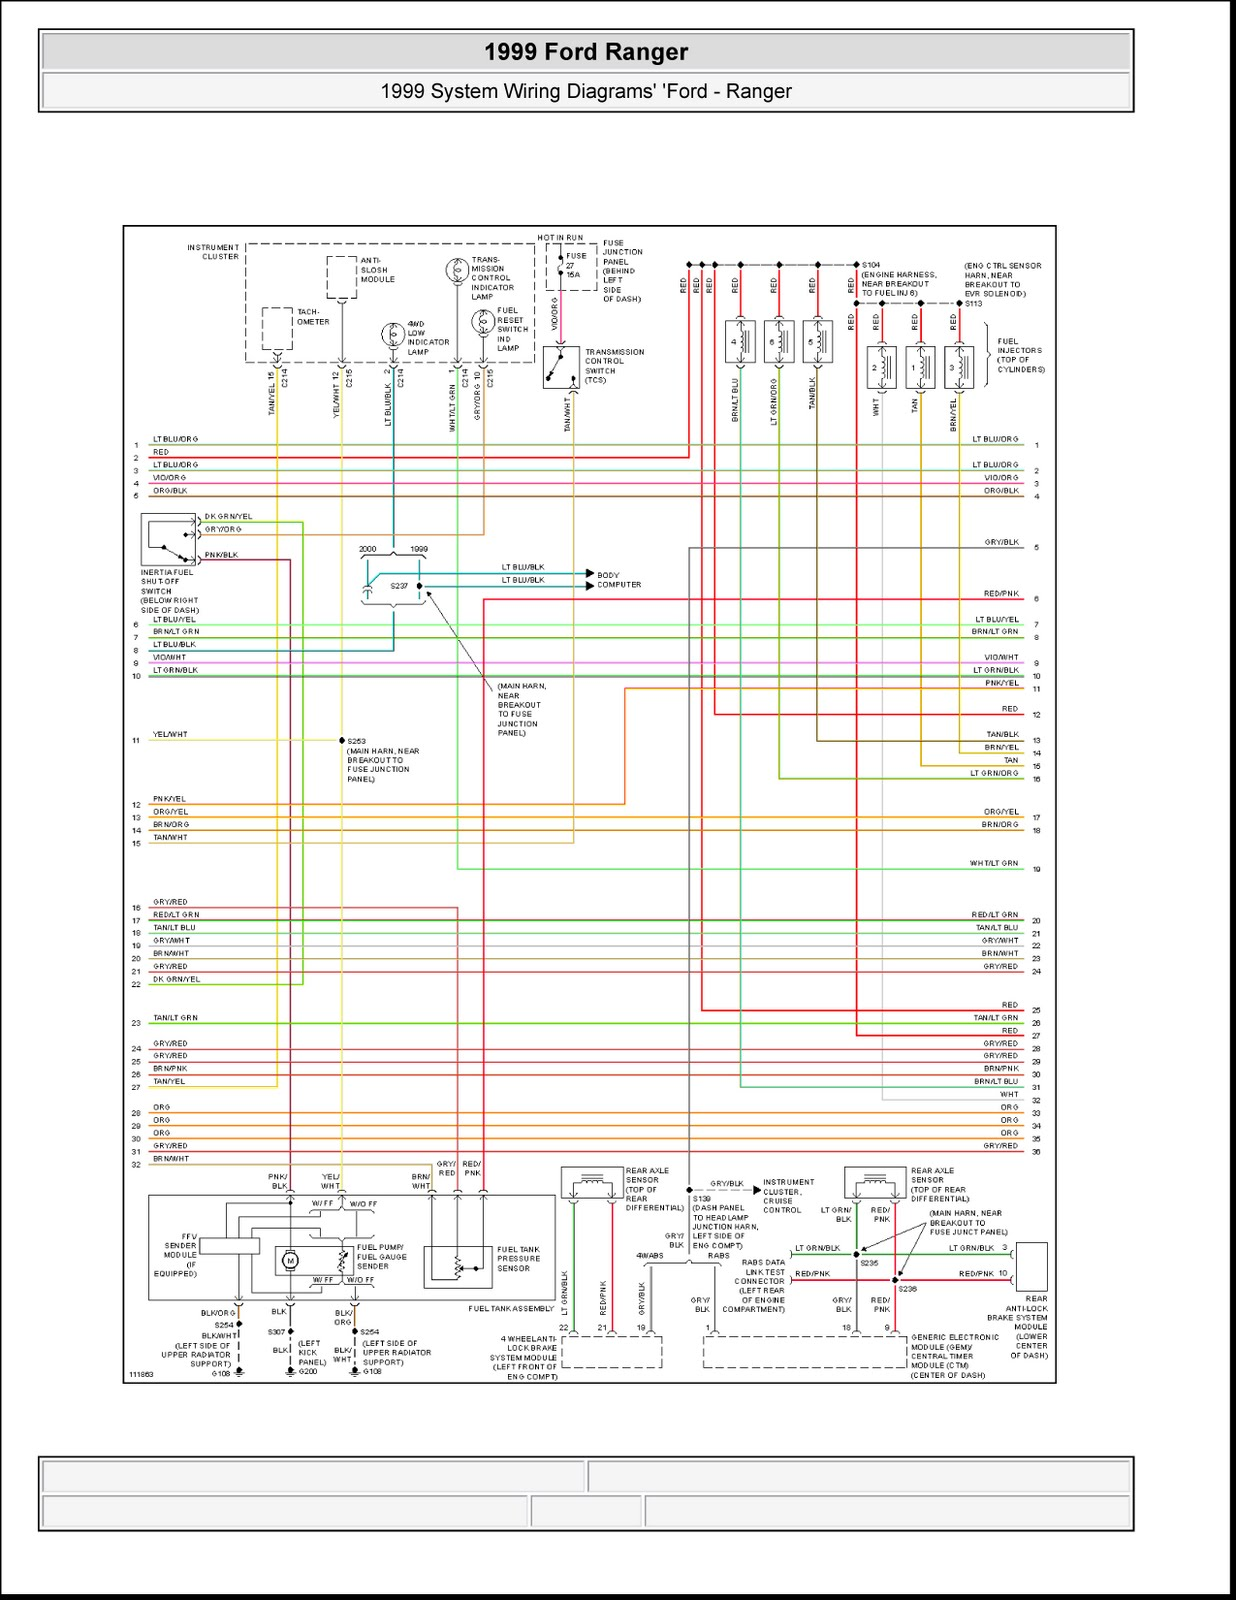 1999 Ford Ranger Wiring Schematic Opinions About Diagram 2004 System Diagrams 4 Images Center 2003 Fuse